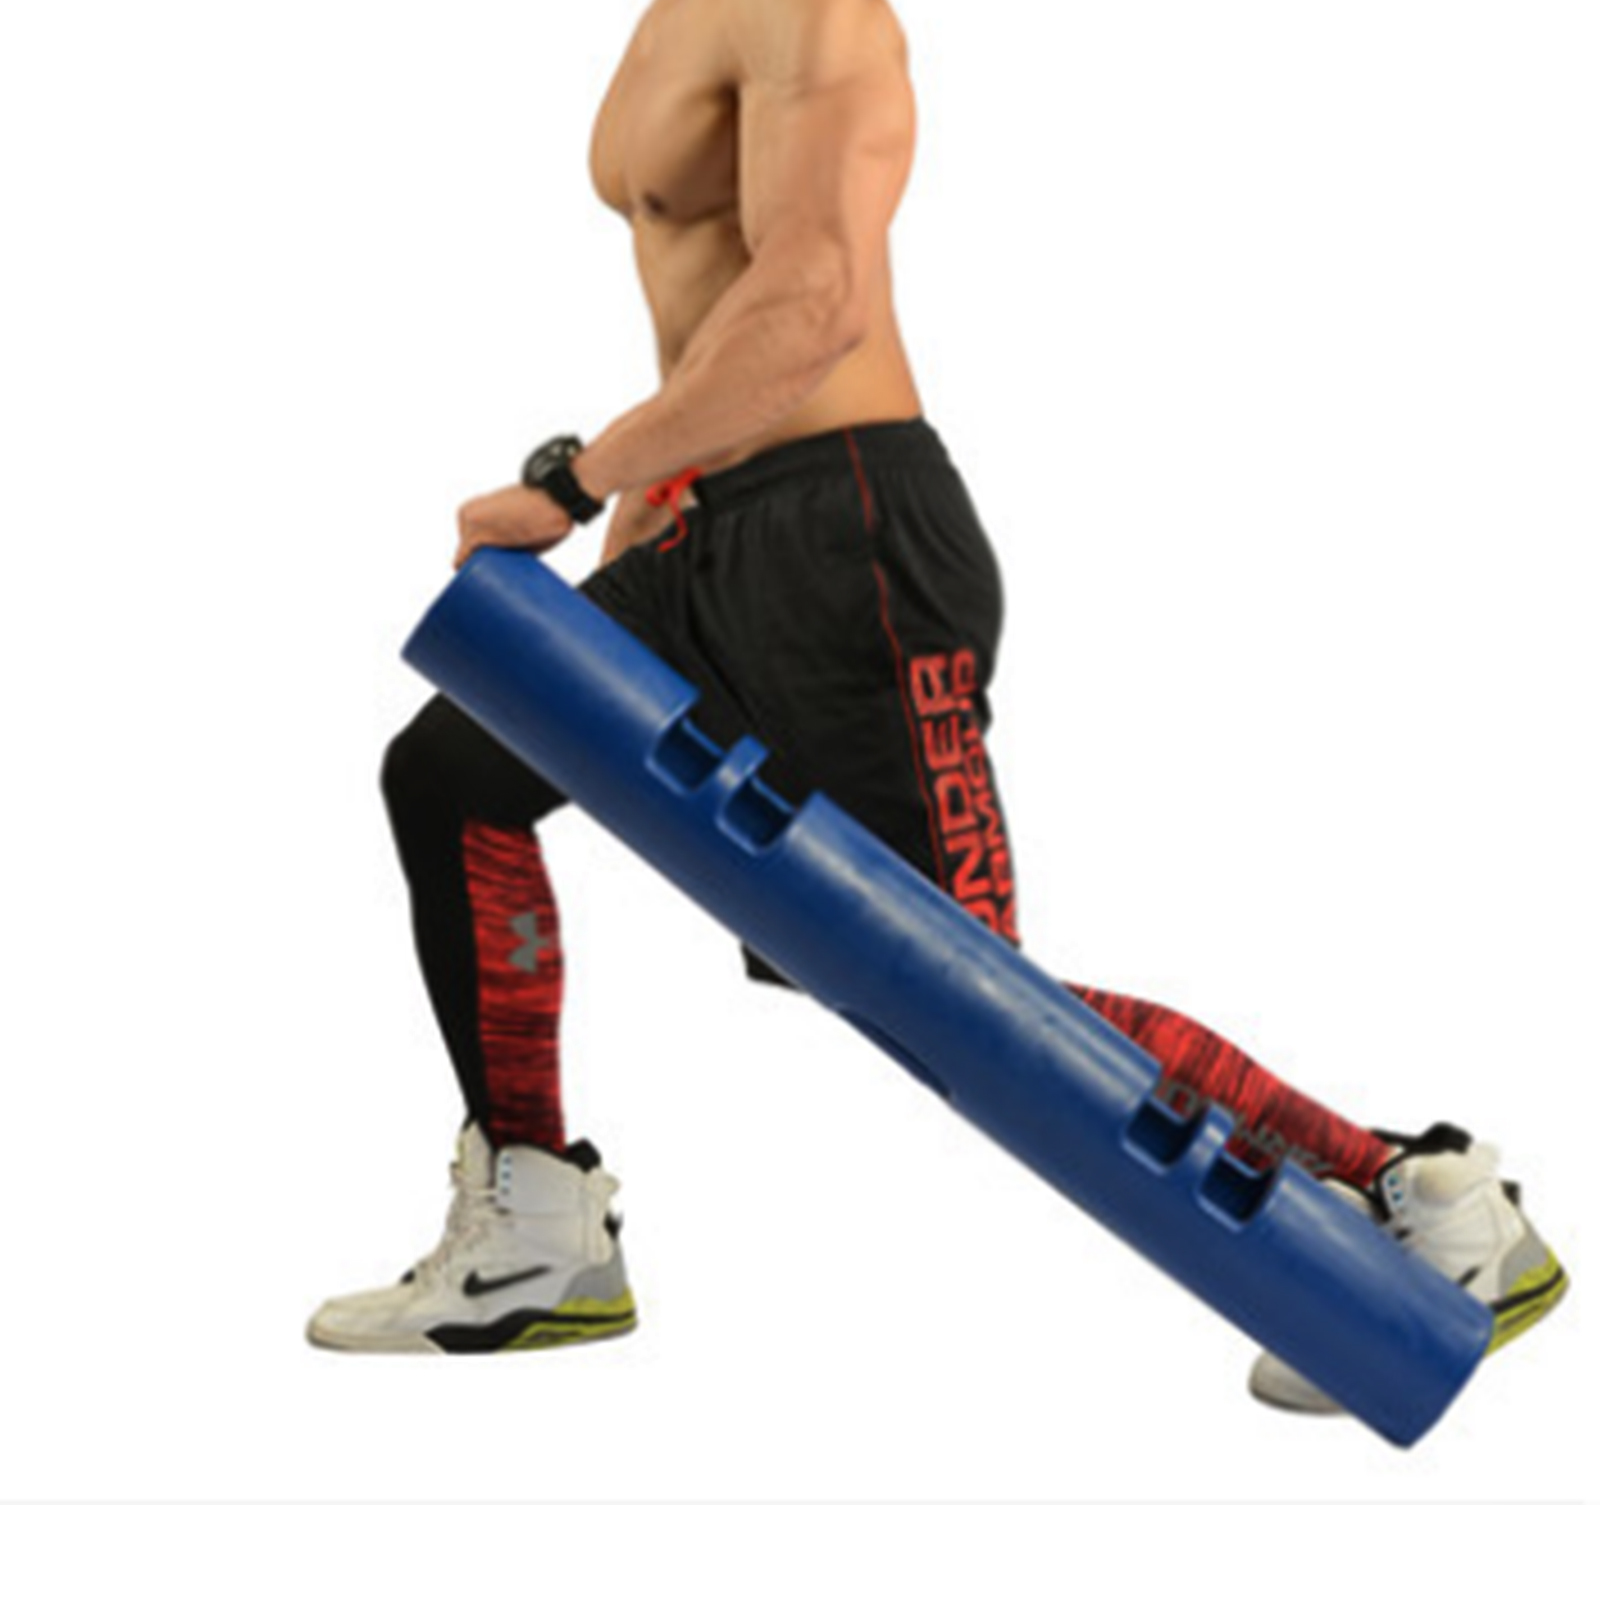 Vipr-Fitpro-Fitness-Tube-Loaded-Movement-Training-weightlifting-4-6-8-10-12-Kg thumbnail 48